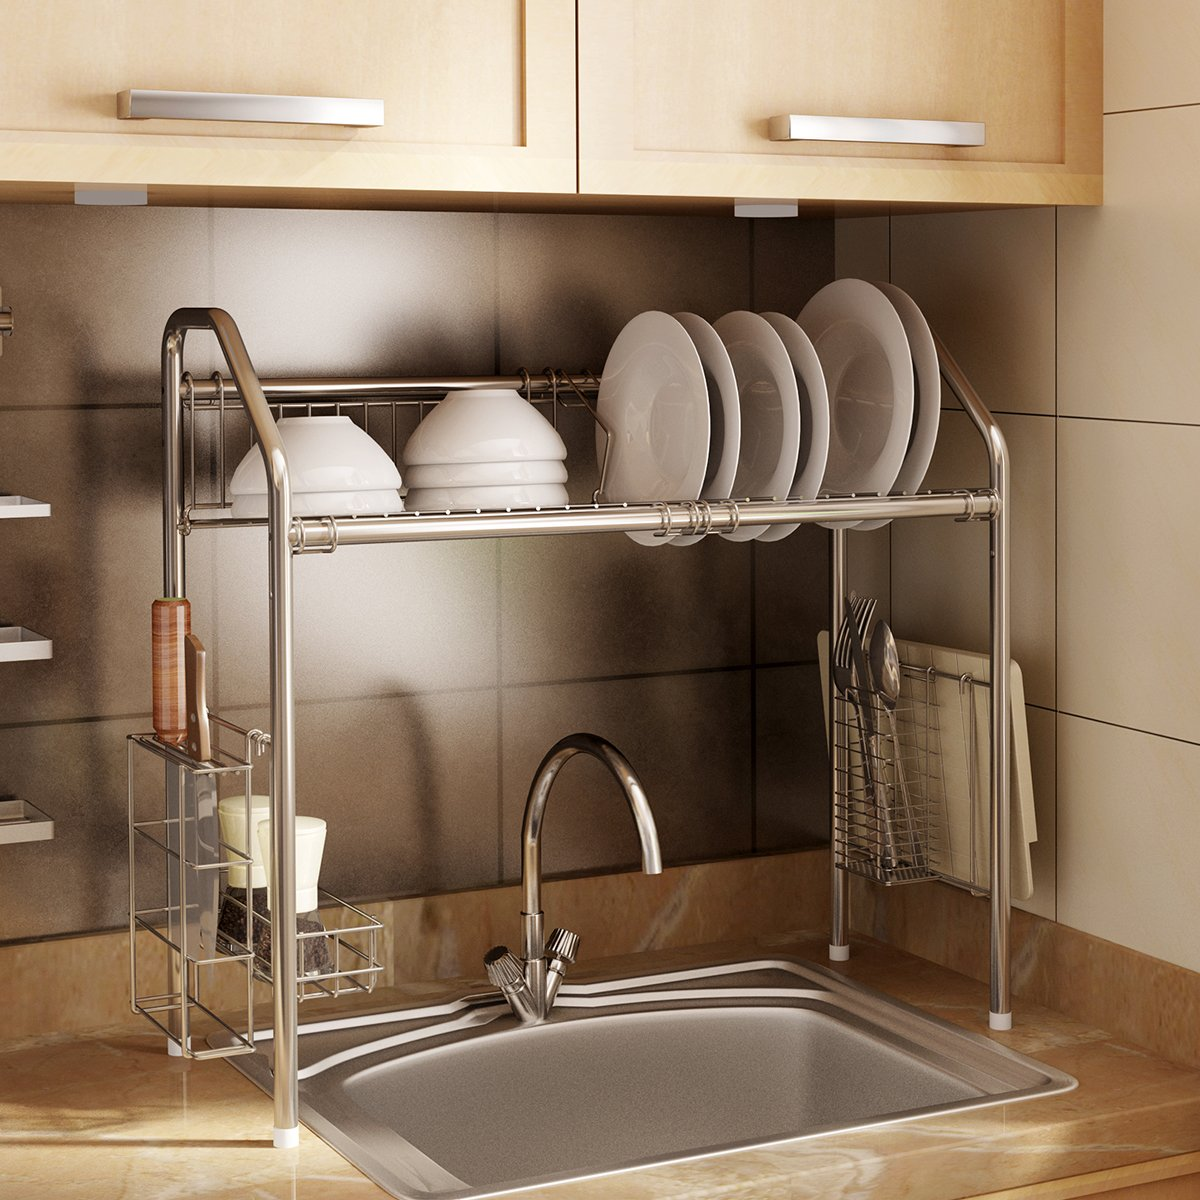 shelf over bathroom sink the sink shelf organizers for kitchen and bathroom 20355